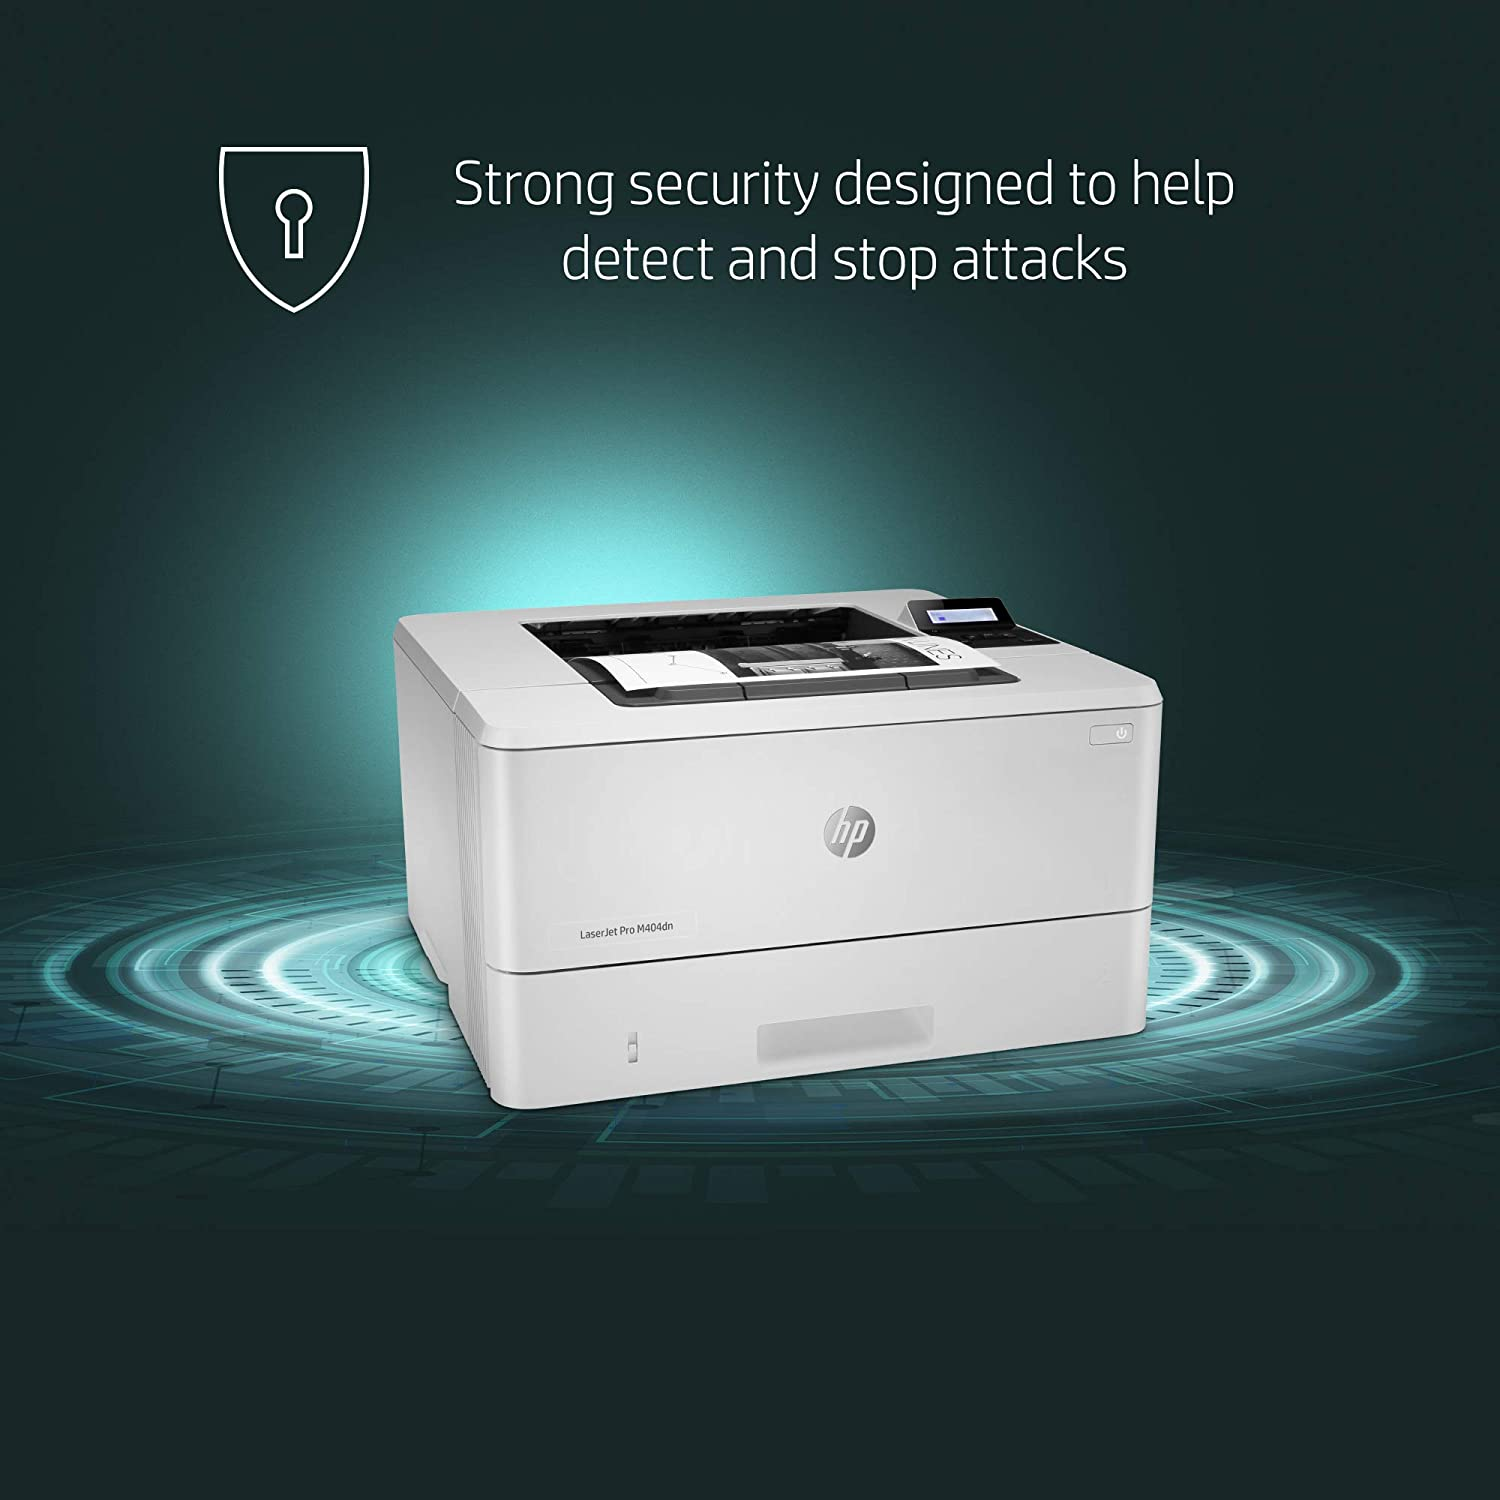 HP LaserJet Pro M404dn Monochrome Laser Printer with Built-In Ethernet & Double-Sided Printing, Works with Alexa (W1A53A): Electronics